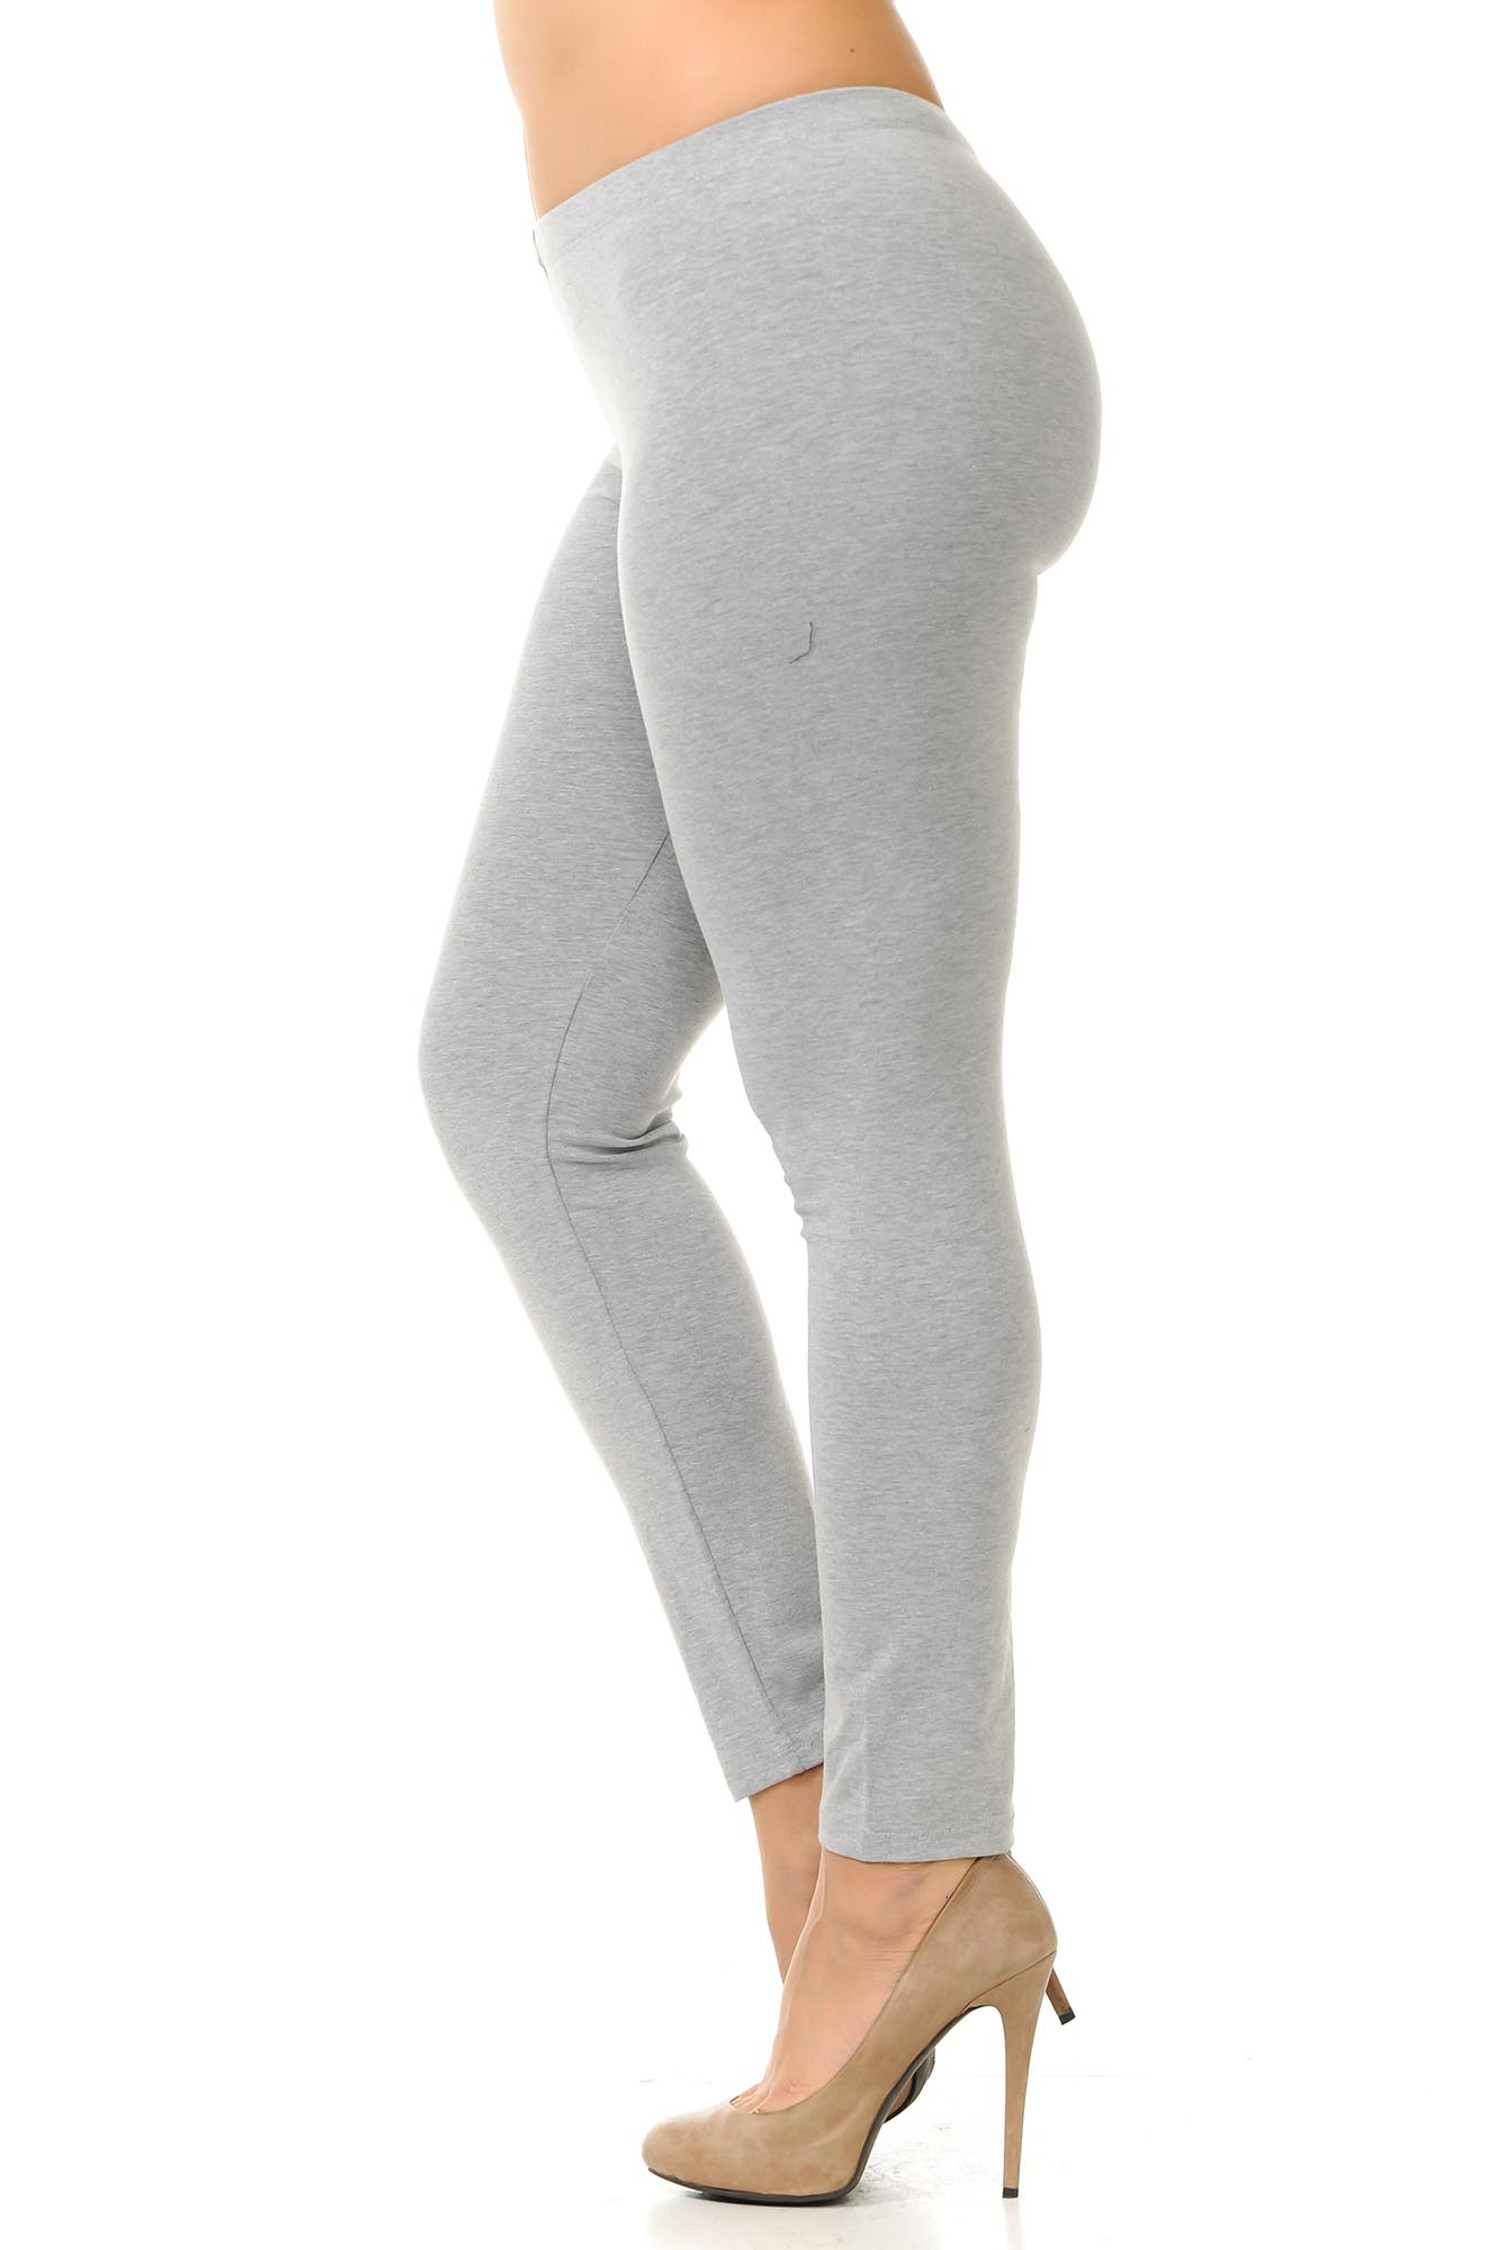 Left side view of heather gray plus size USA Cotton Full Length Leggings.